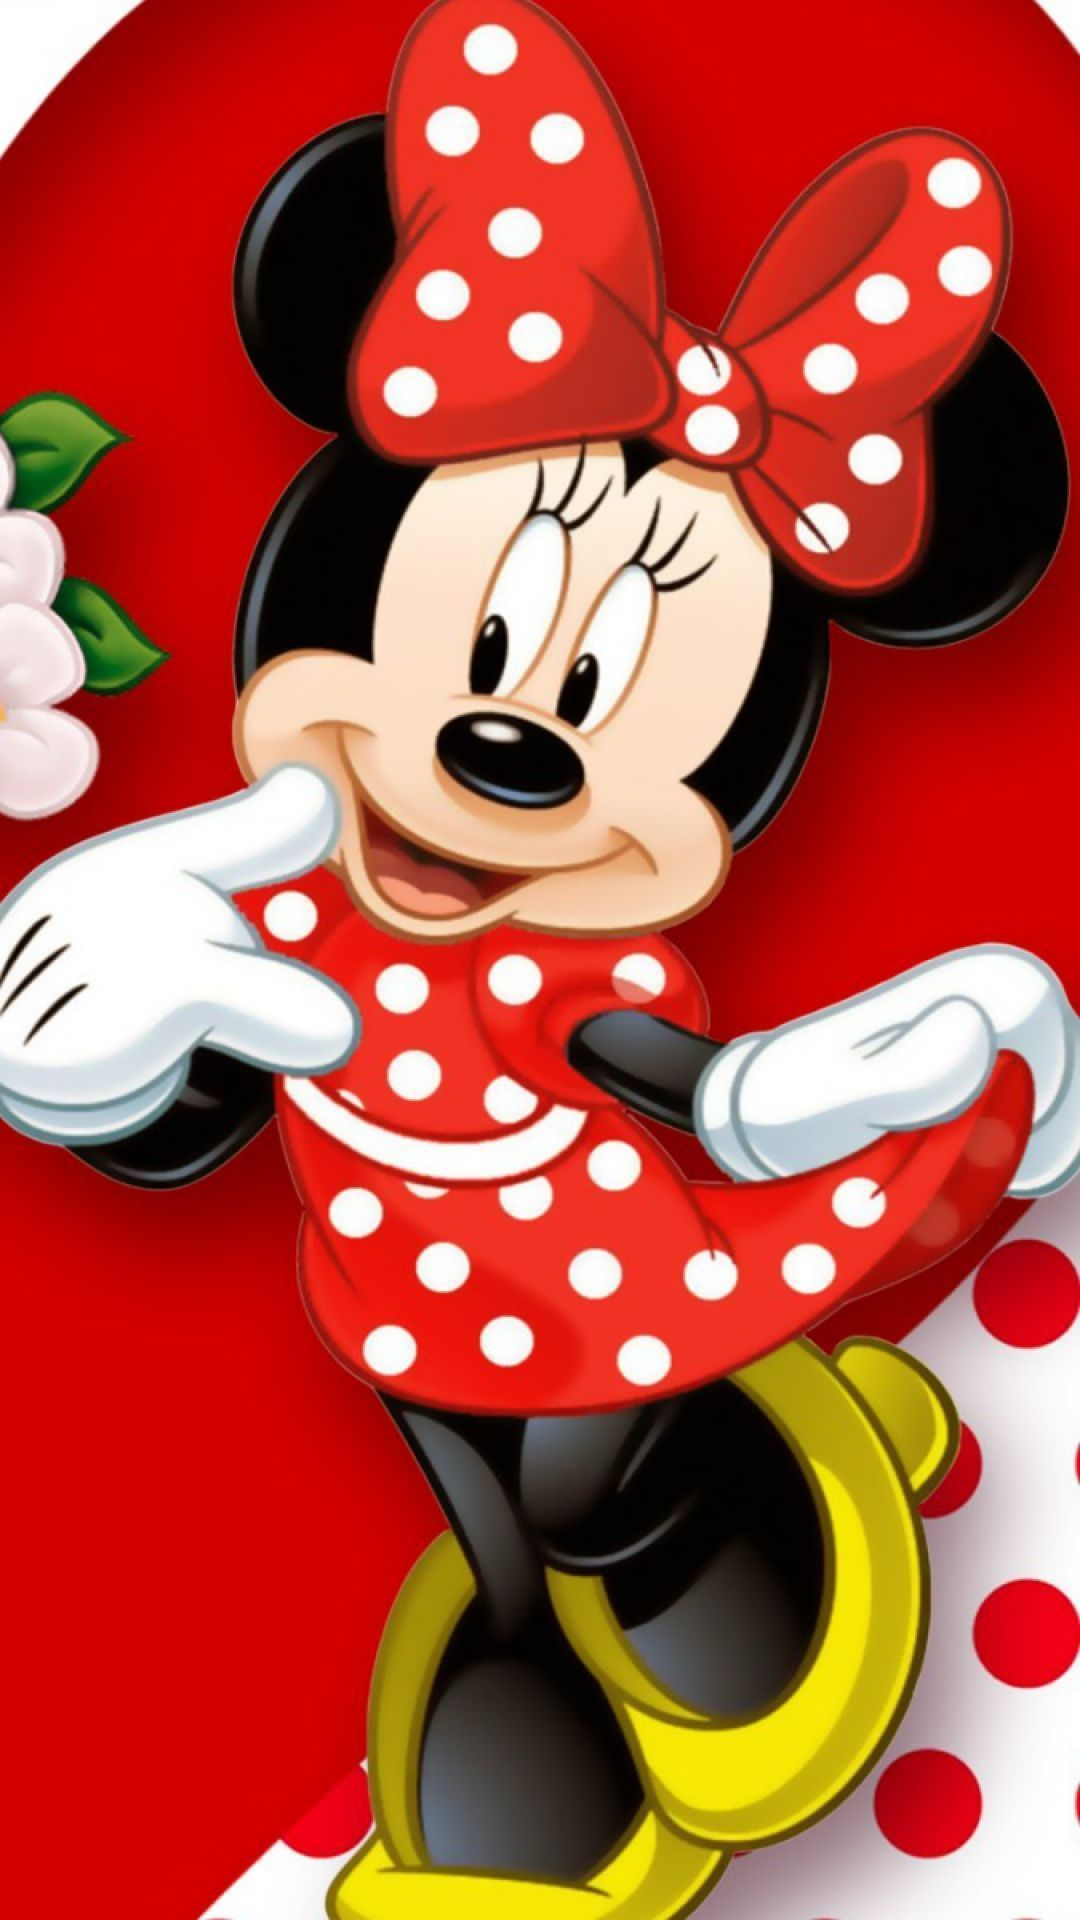 Black Minnie Mouse Wallpaper Android Download in 2020 ...